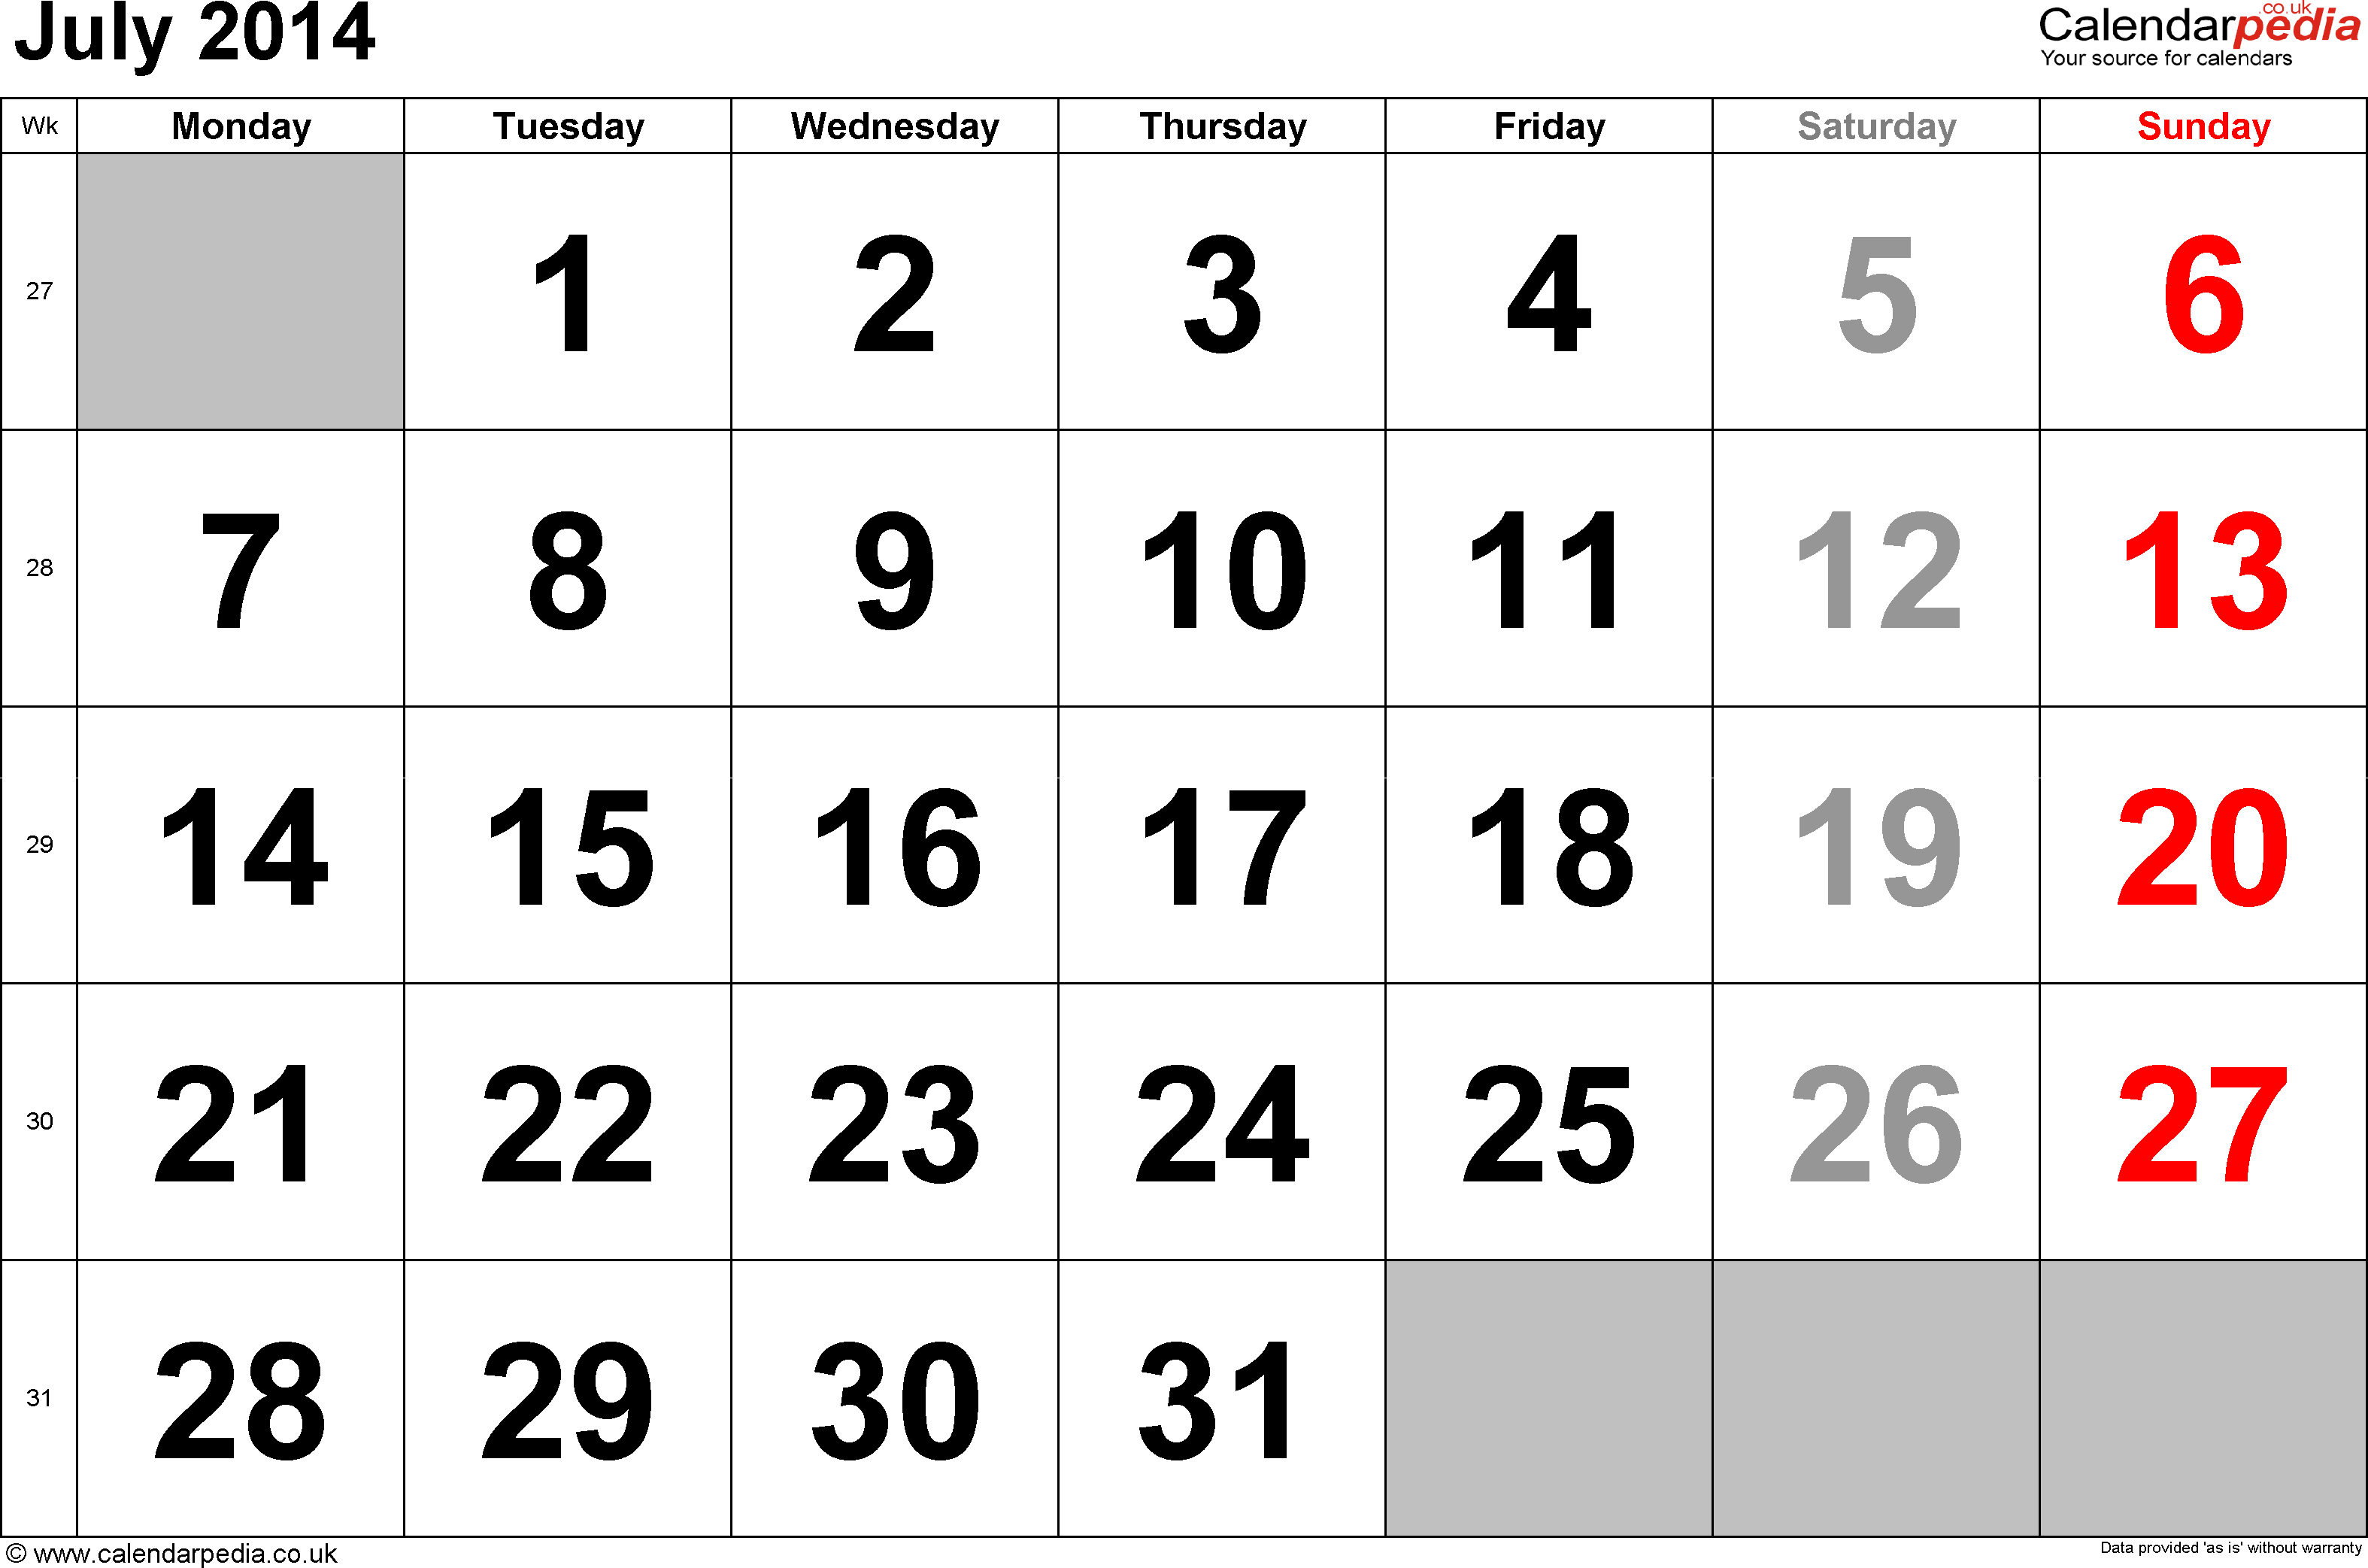 Calendar July 2014, landscape orientation, large numerals, 1 page, with UK bank holidays and week numbers